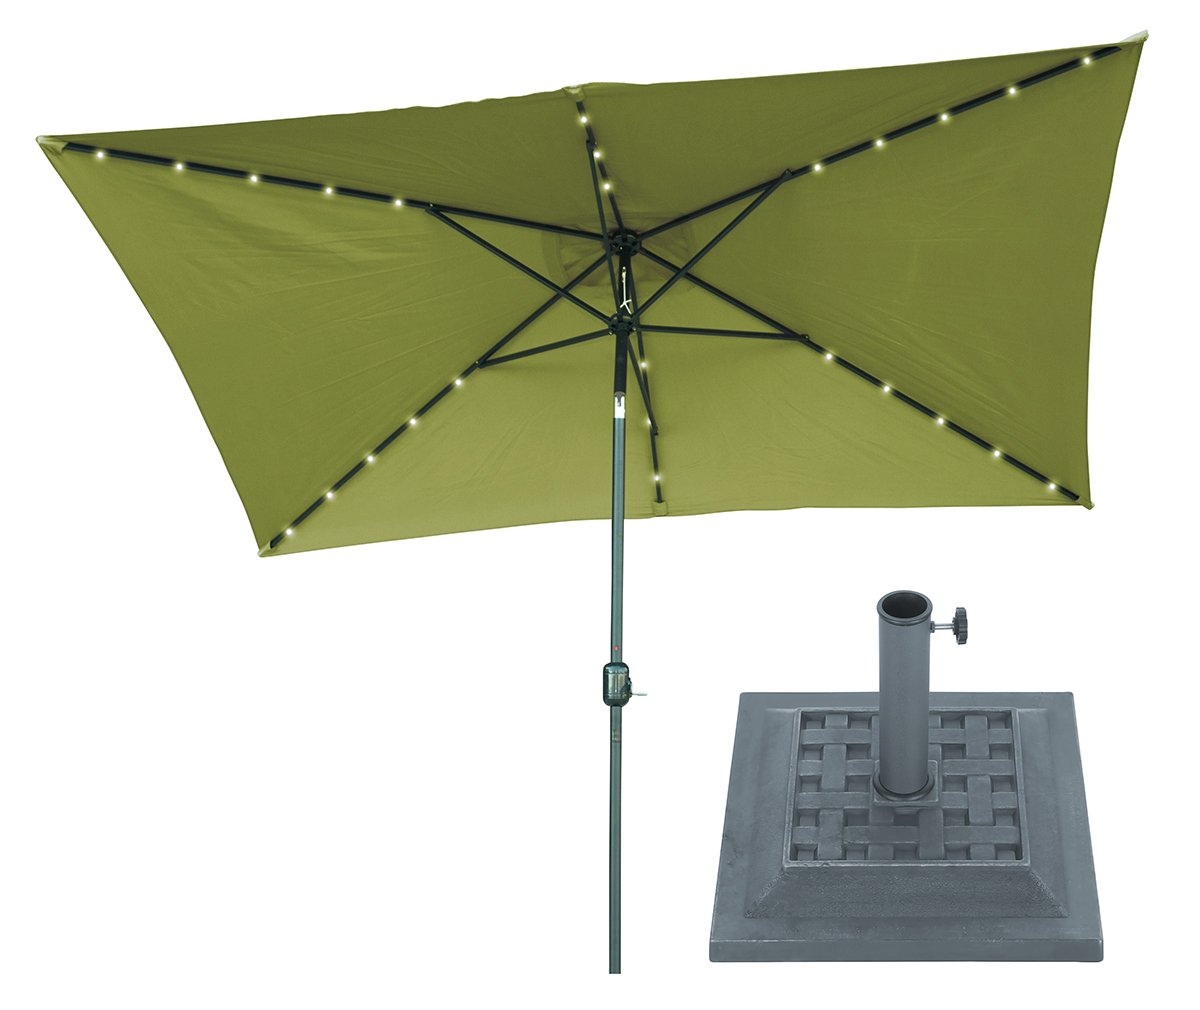 10' x 6.5' Light Green Rectangular Solar Powered LED Lighted Patio Umbrella with Gray Square Base - By Trademark Innovations